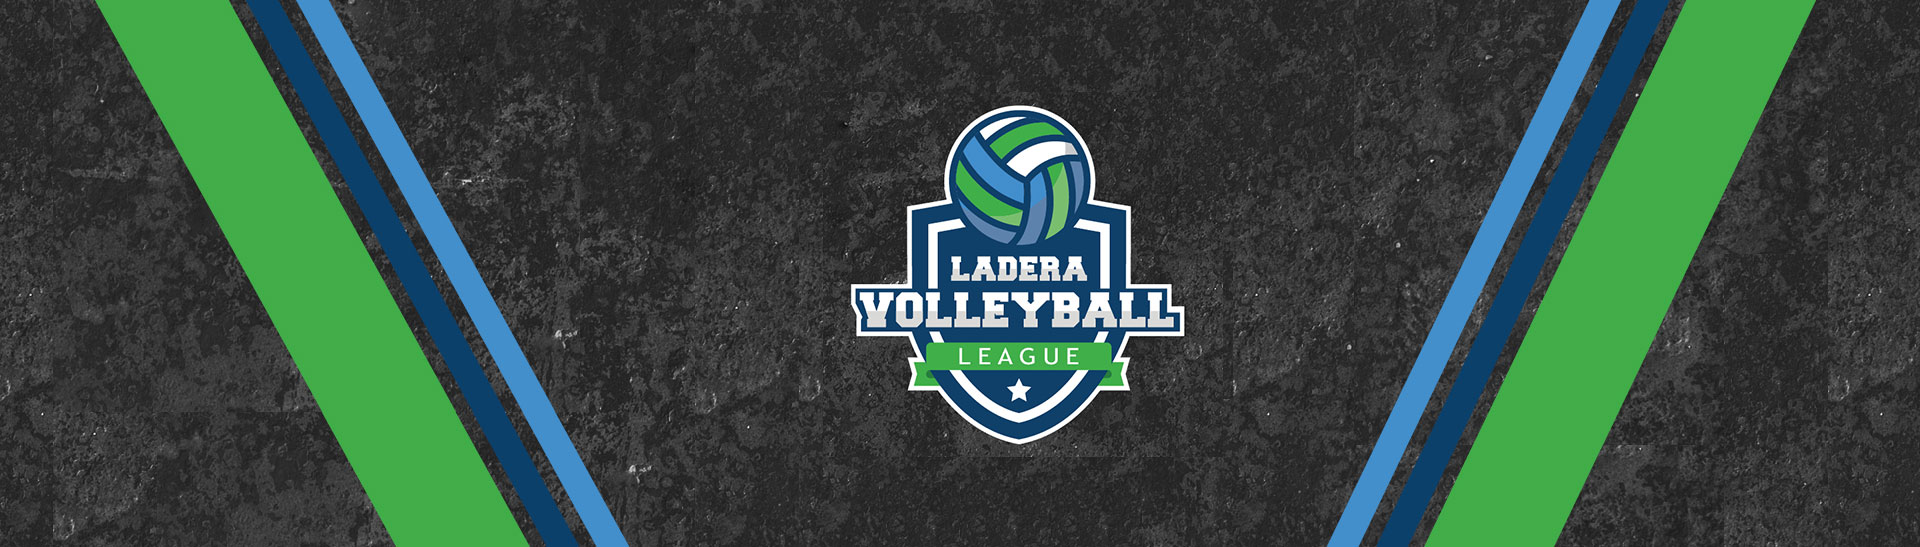 Ladera Volleyball League